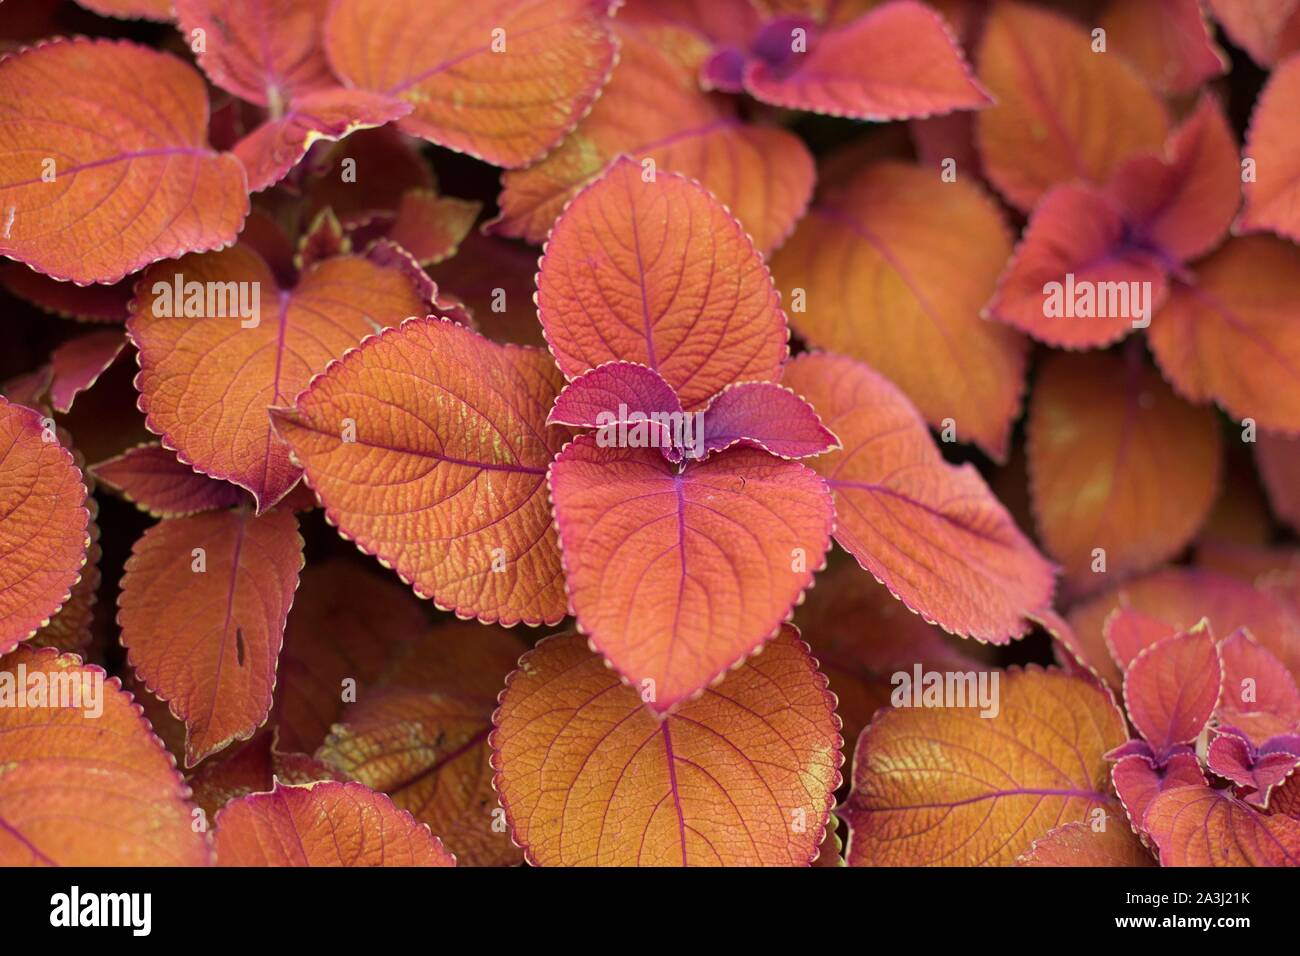 Plectranthus scutellarioides Colorblaze Sedona sunset coleus. Stock Photo